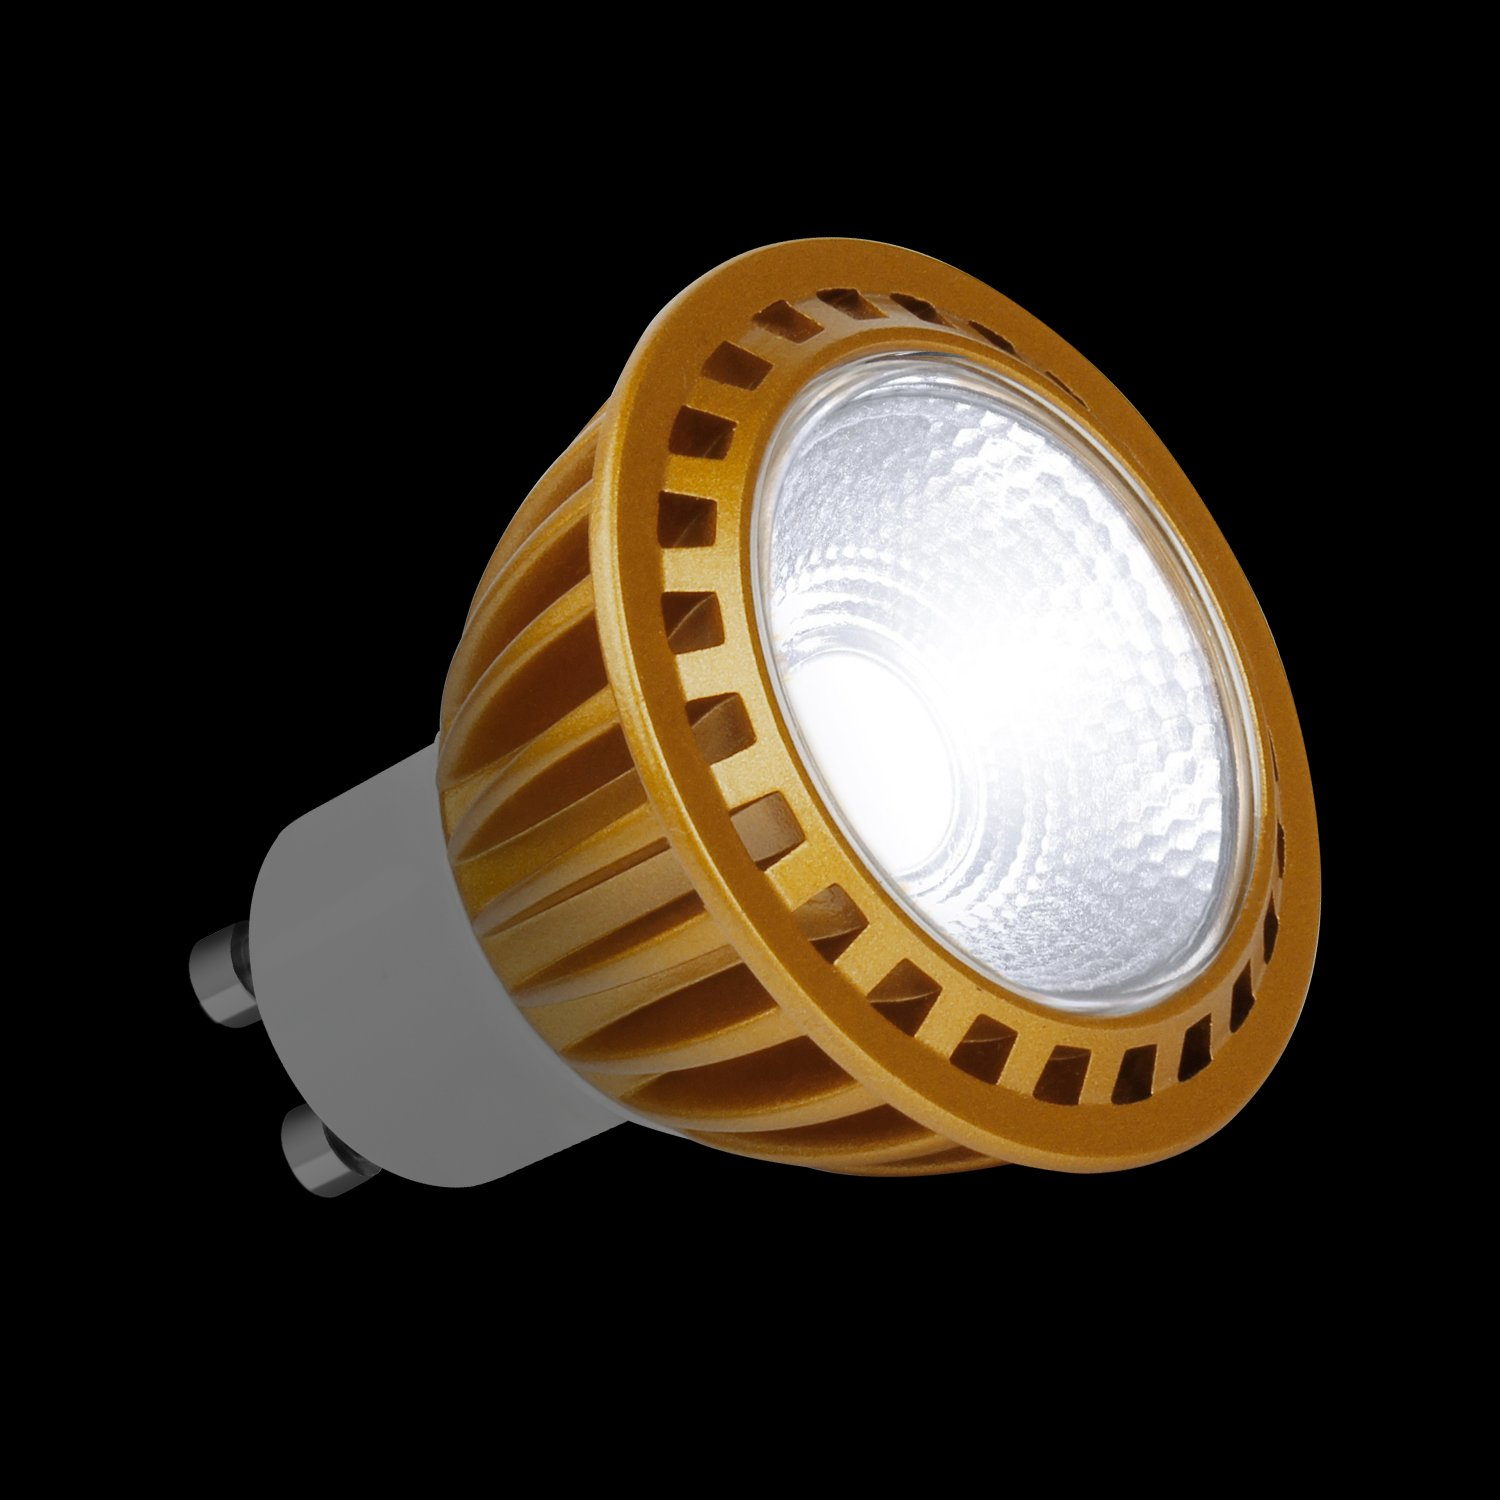 7 W COB GU10 LED bombillas, cool white, GU10, 7.00 W 230.00 voltsV: Amazon.es: Iluminación